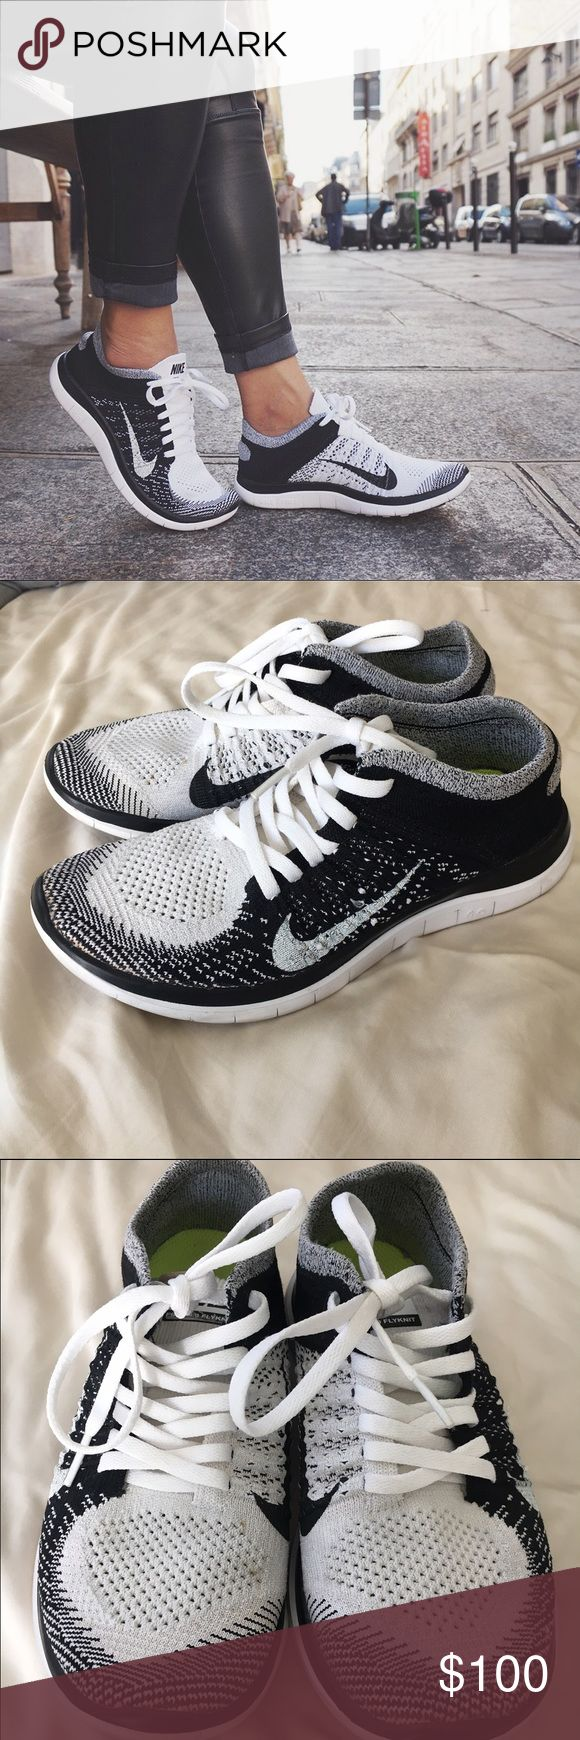 "Nike free 4.0 Oreo Flyknits Women's size 6 Nike feee 4.0 black and white ""Oreo"" flyknit athletic shoes. Great condition. A couple small spots on the front (very small). Only real flaw is the end of one shoe lace is stained a light brown color, but it's not noticeable. And you can easily get new laces. Very sought after style and color! Only selling because I have 2 of them. Can sell less elsewhere Nike Shoes Athletic Shoes"